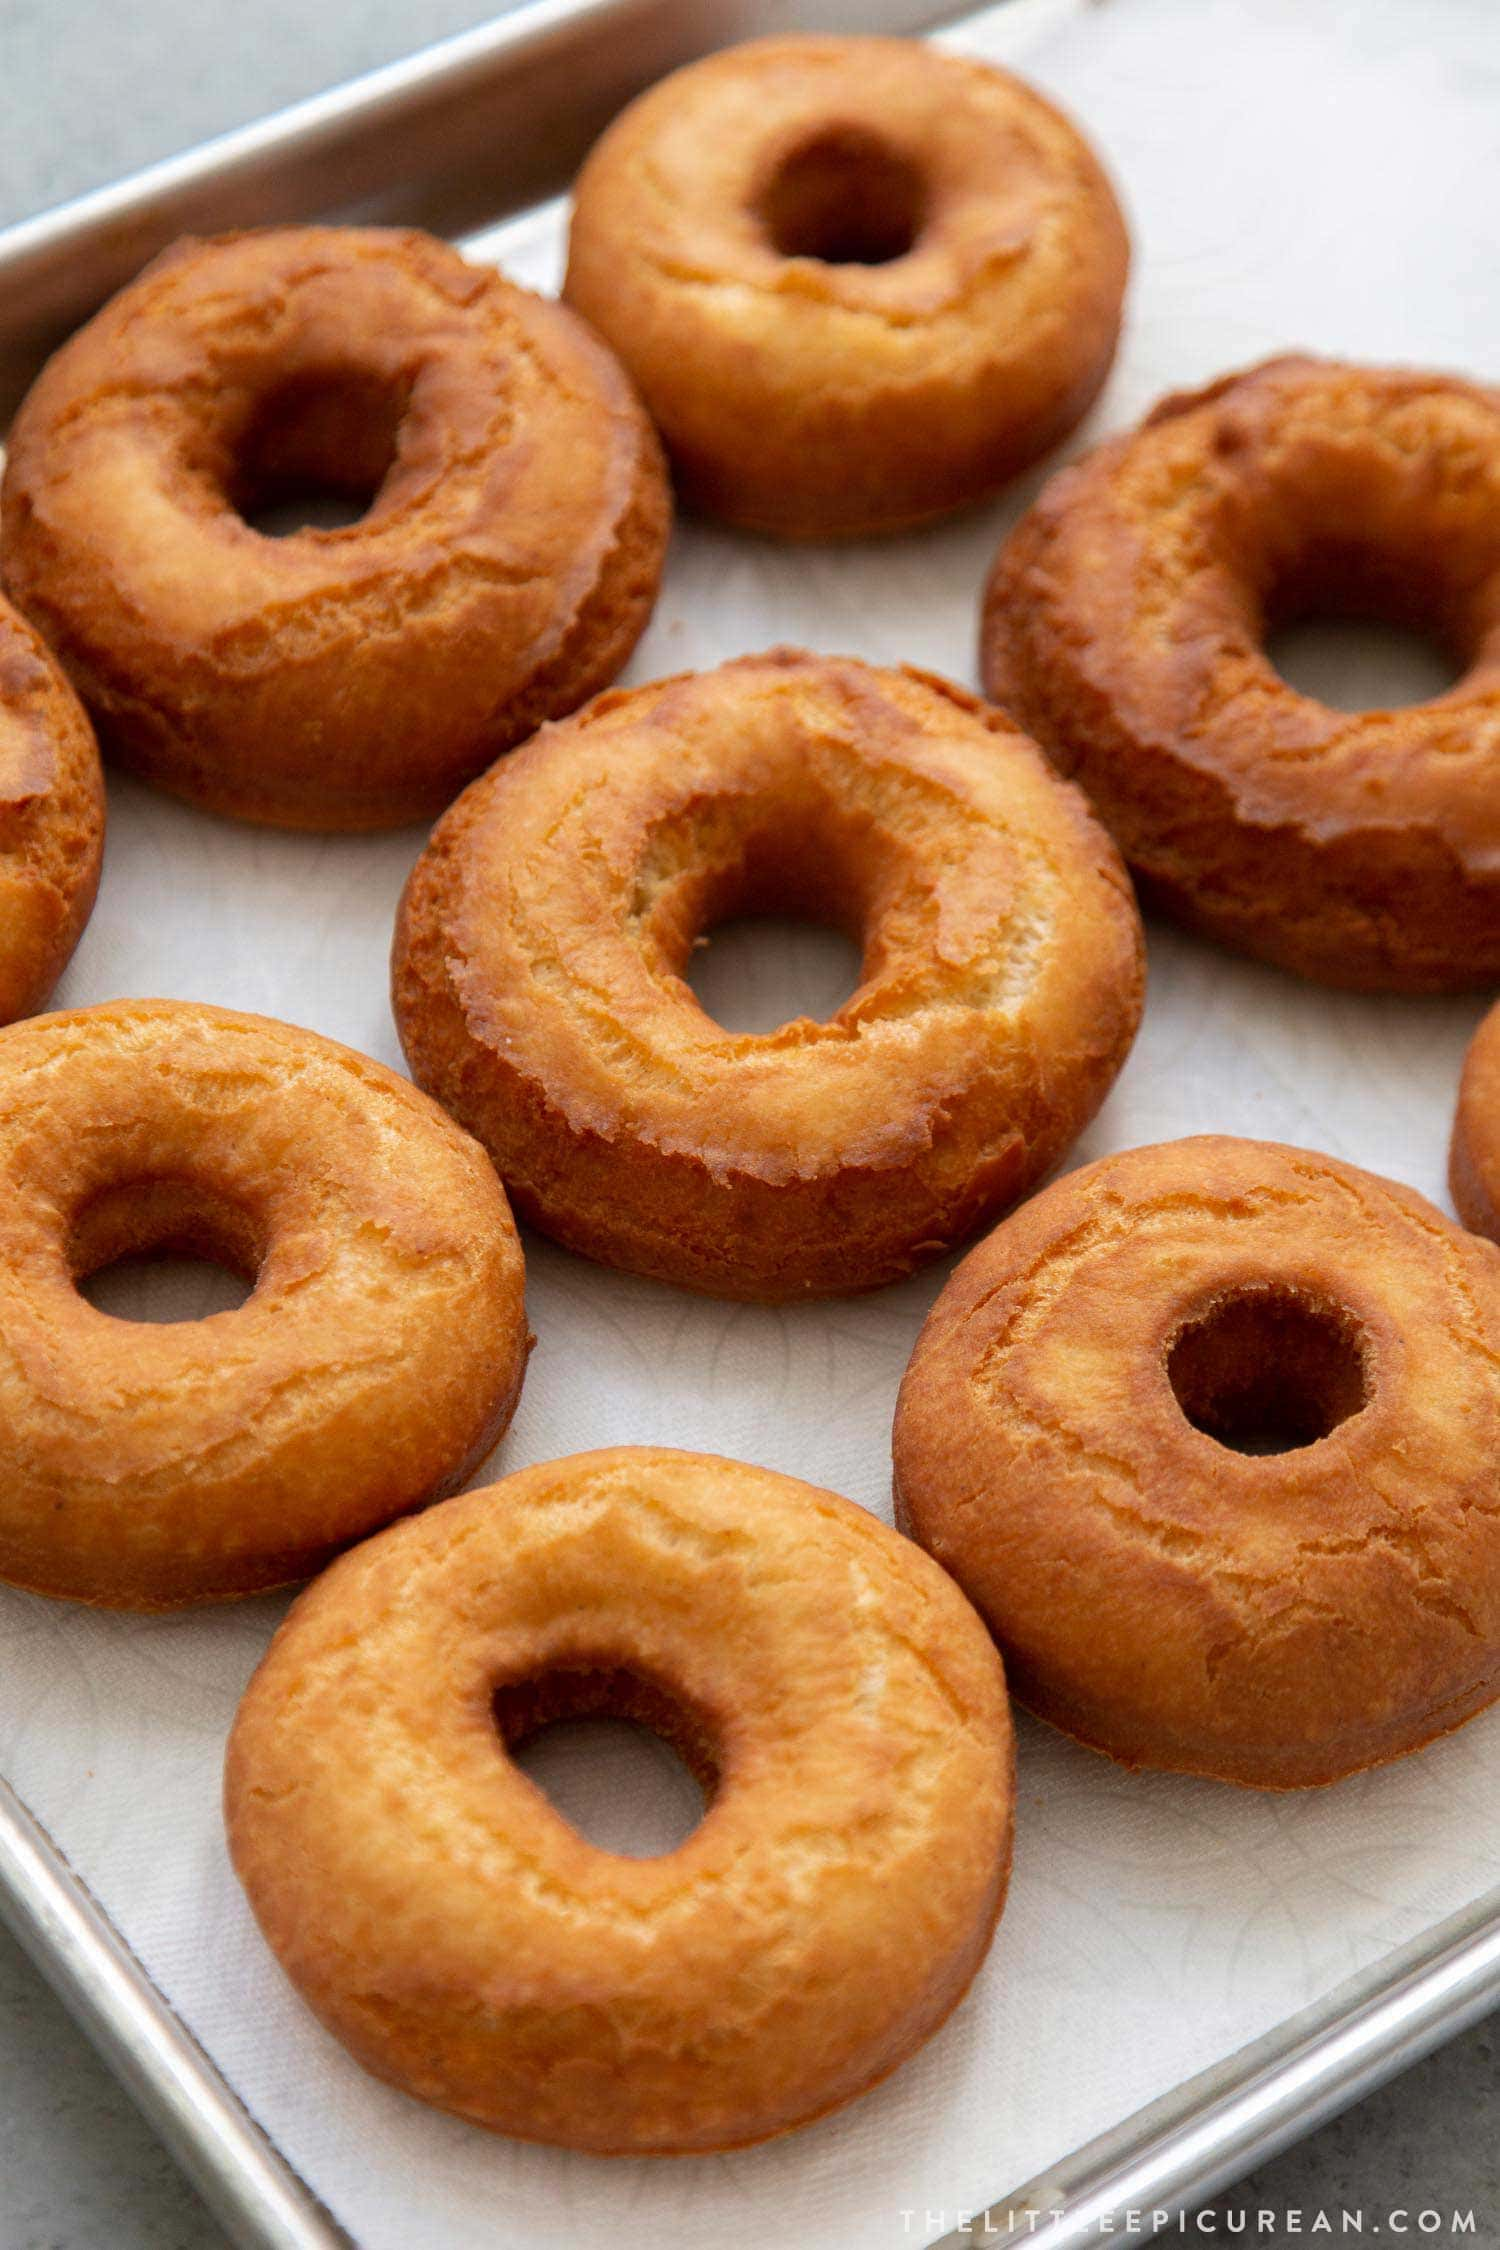 Fried old fashioned donuts before glaze.